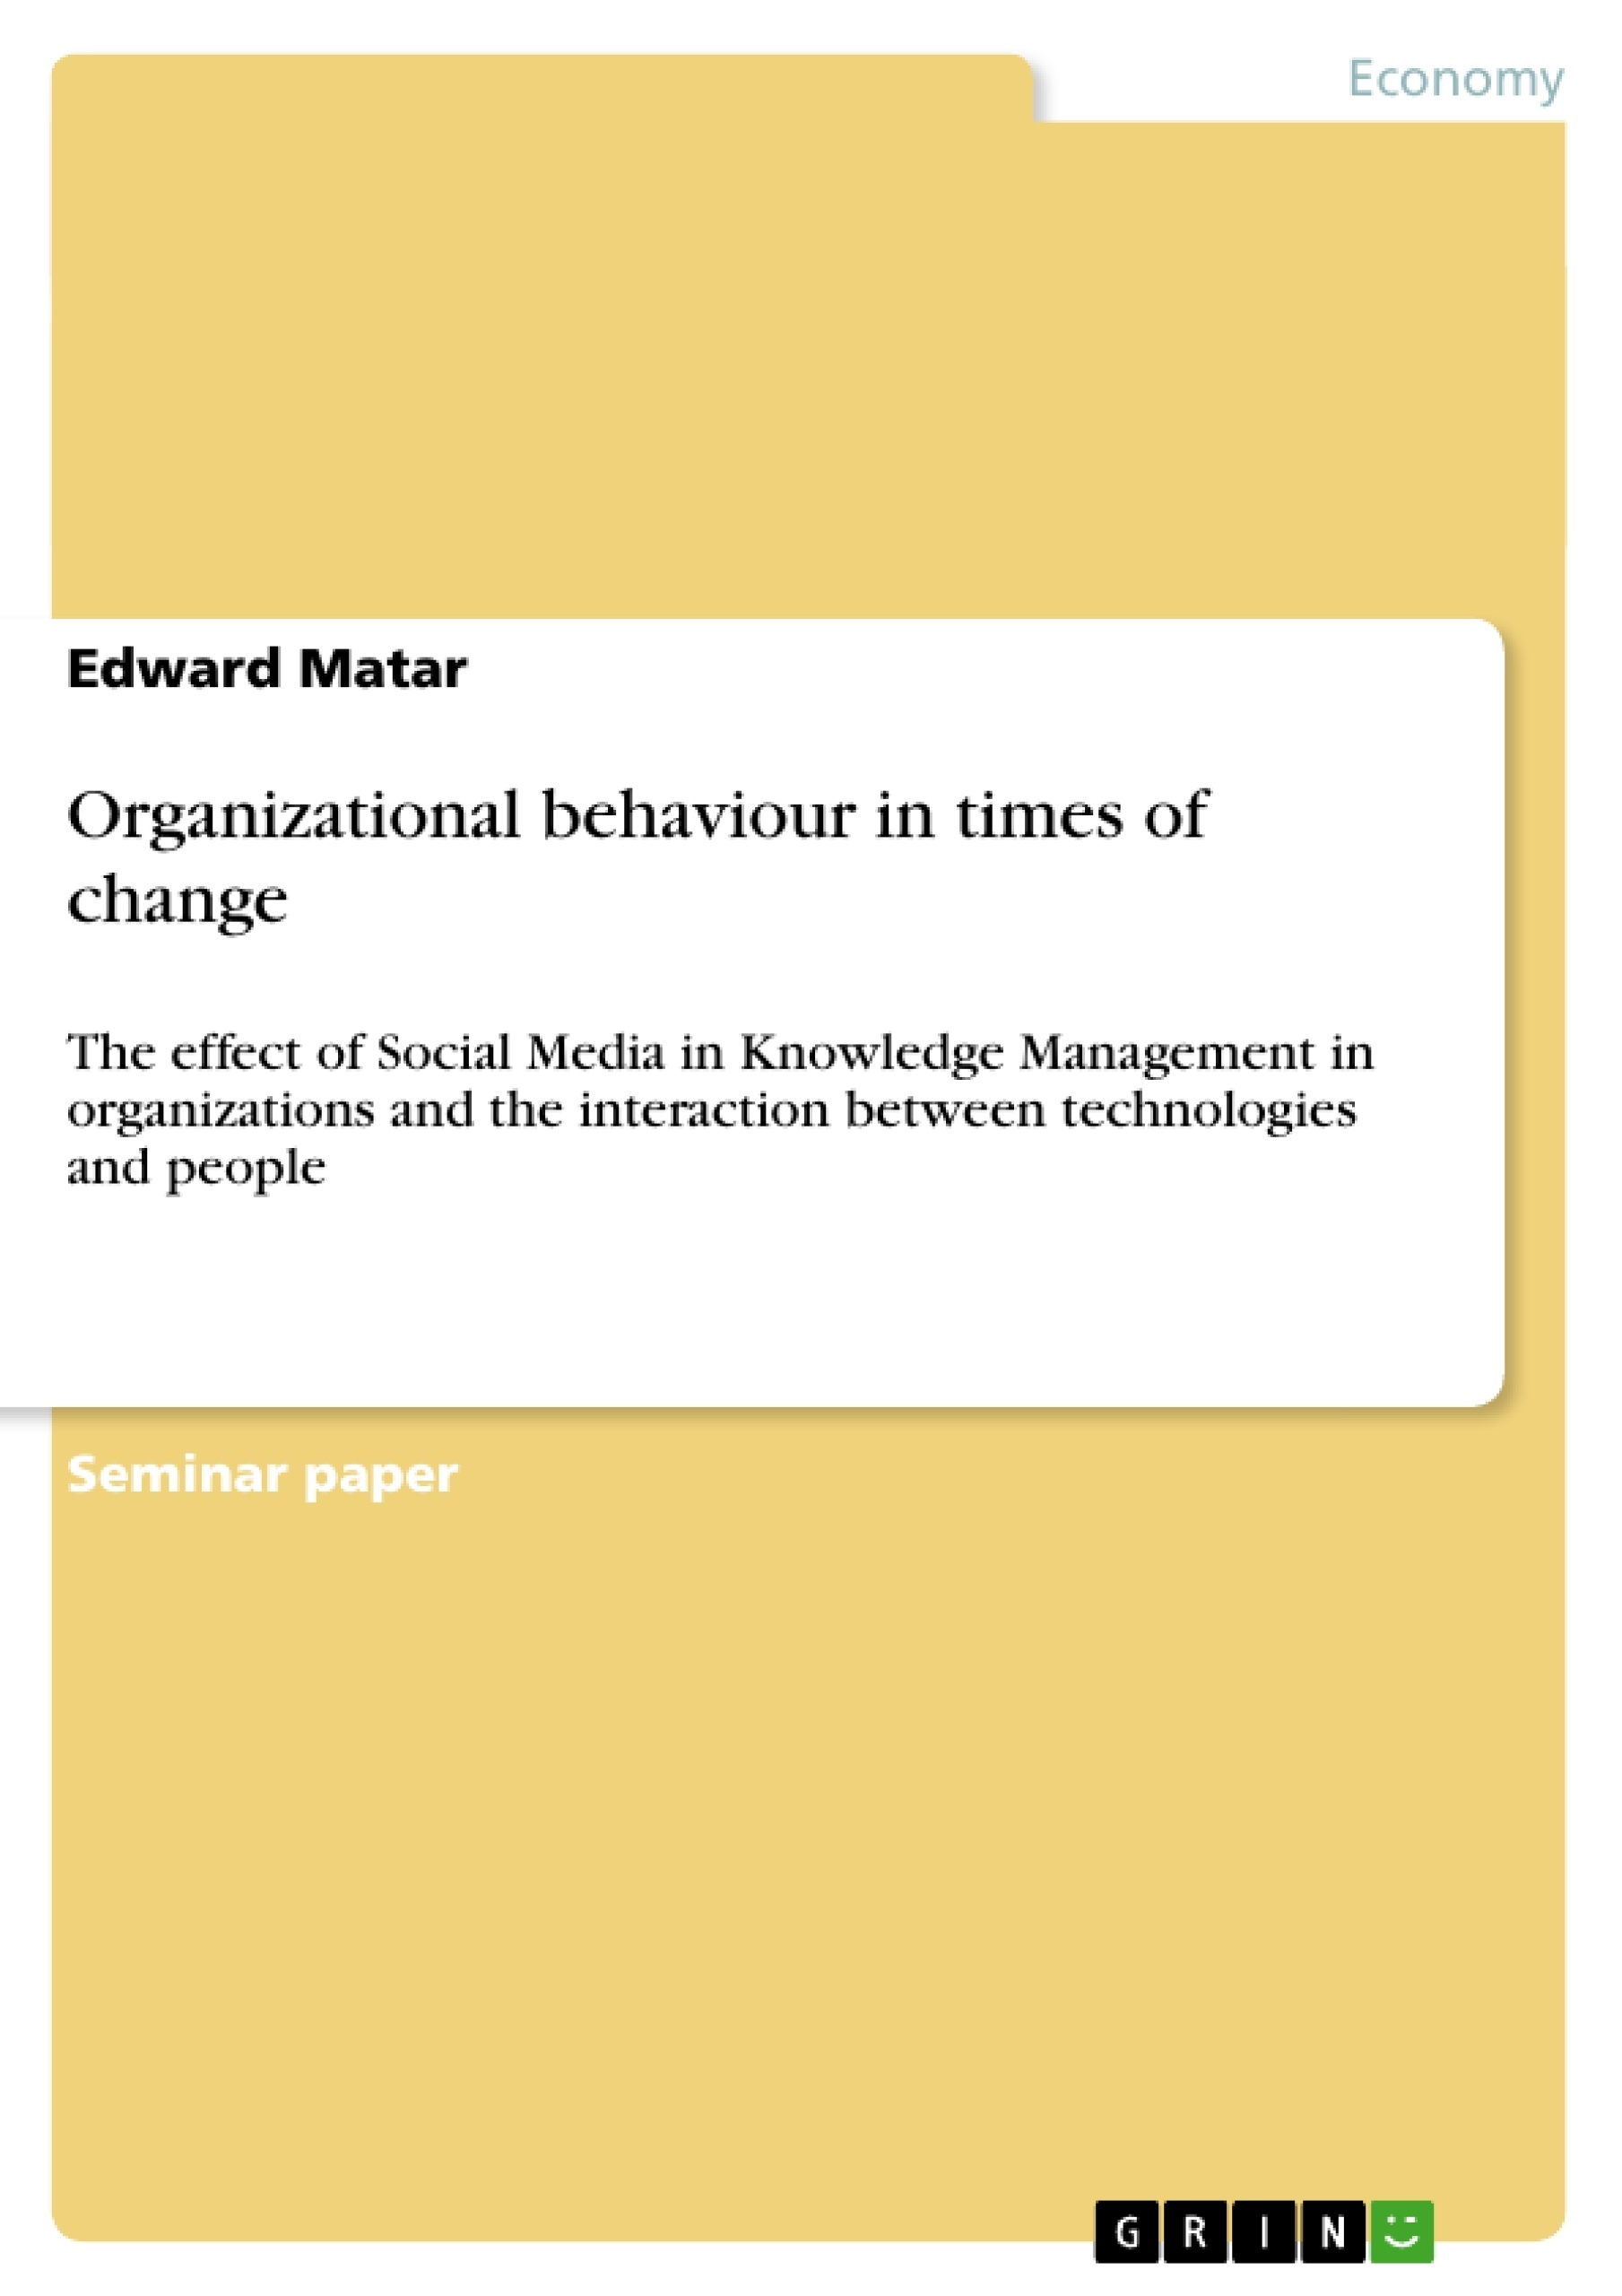 bachelor thesis organizational behavior A list of potential topics and supervisors is published in the bachelor's thesis catalogue in week 42 by 1 december 2017 at 1200, a registration/priority form hansen bus-mgmt-2 organizational behavior and leadership in public organizations jesper rosenberg hansen bus-mgmt-3 public and private differences.